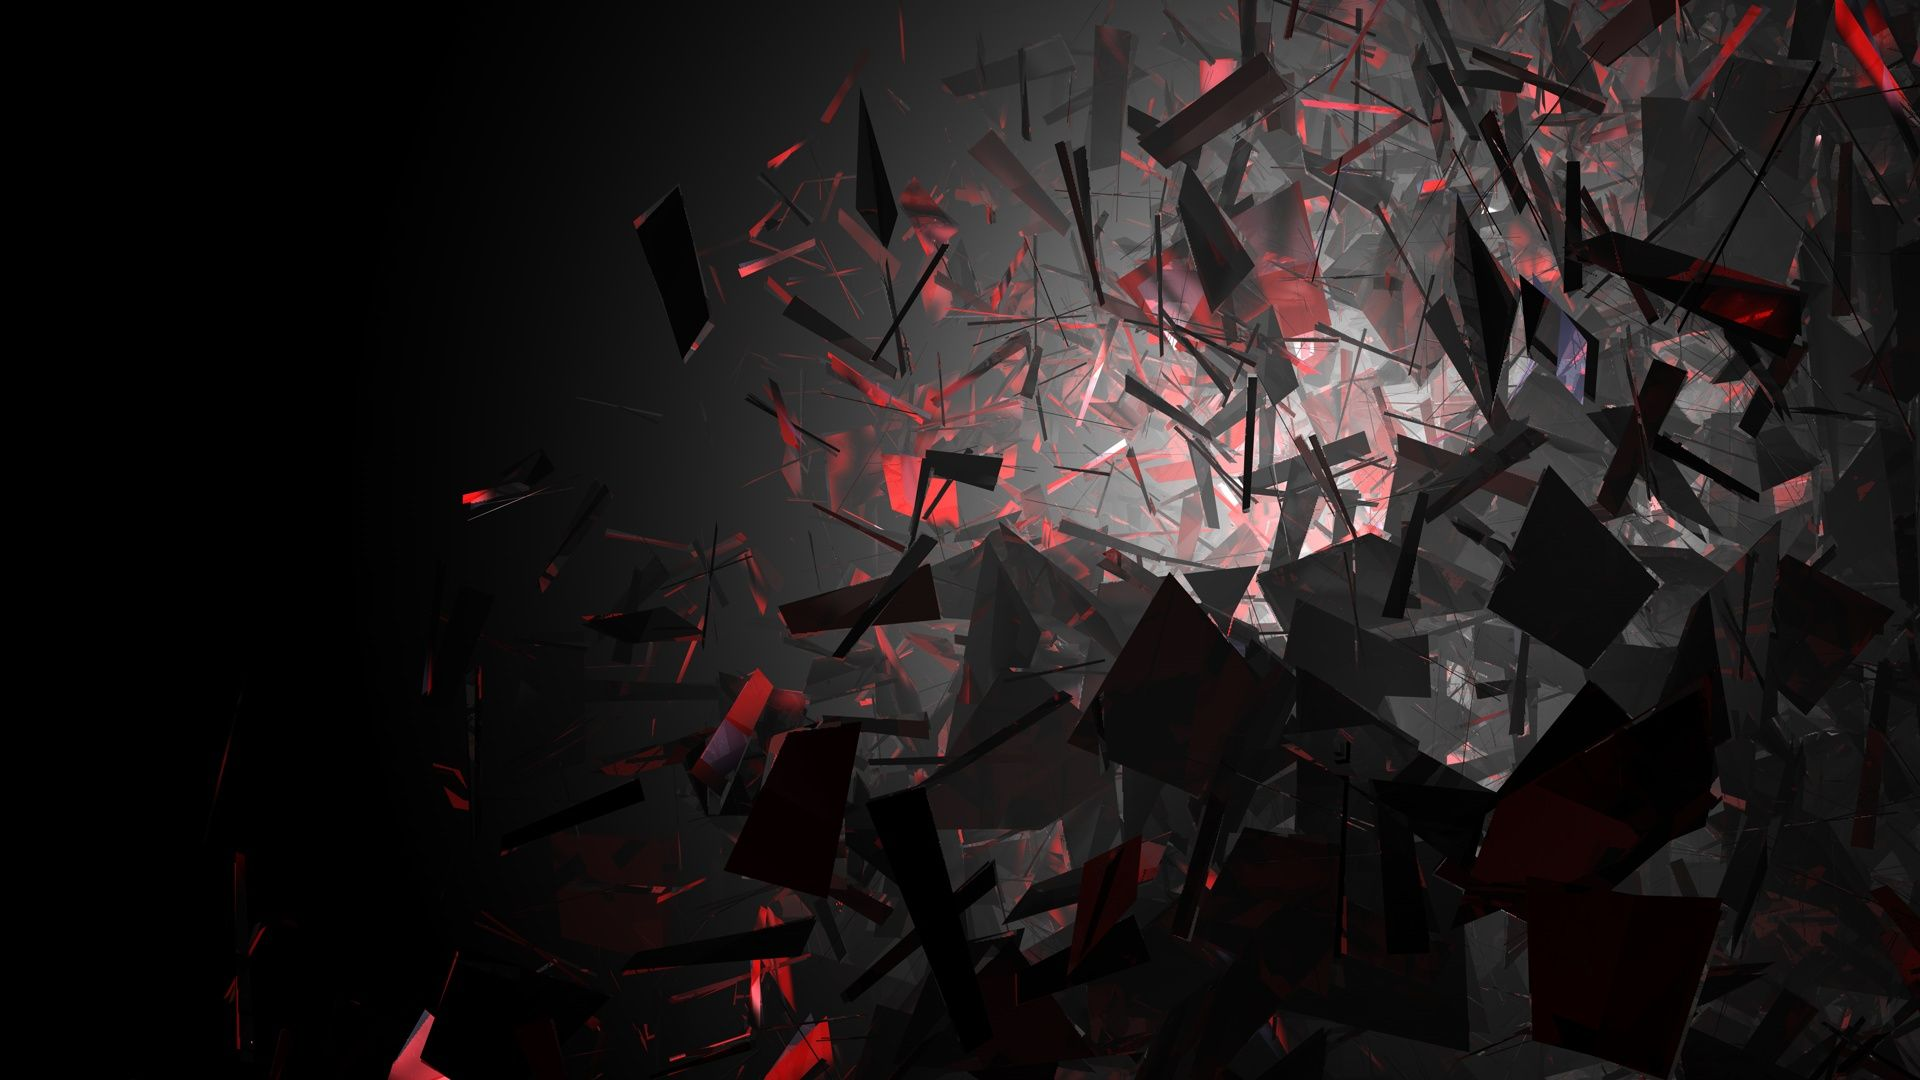 Dark Abstract Wallpapers - Top Free Dark Abstract Backgrounds -  WallpaperAccess